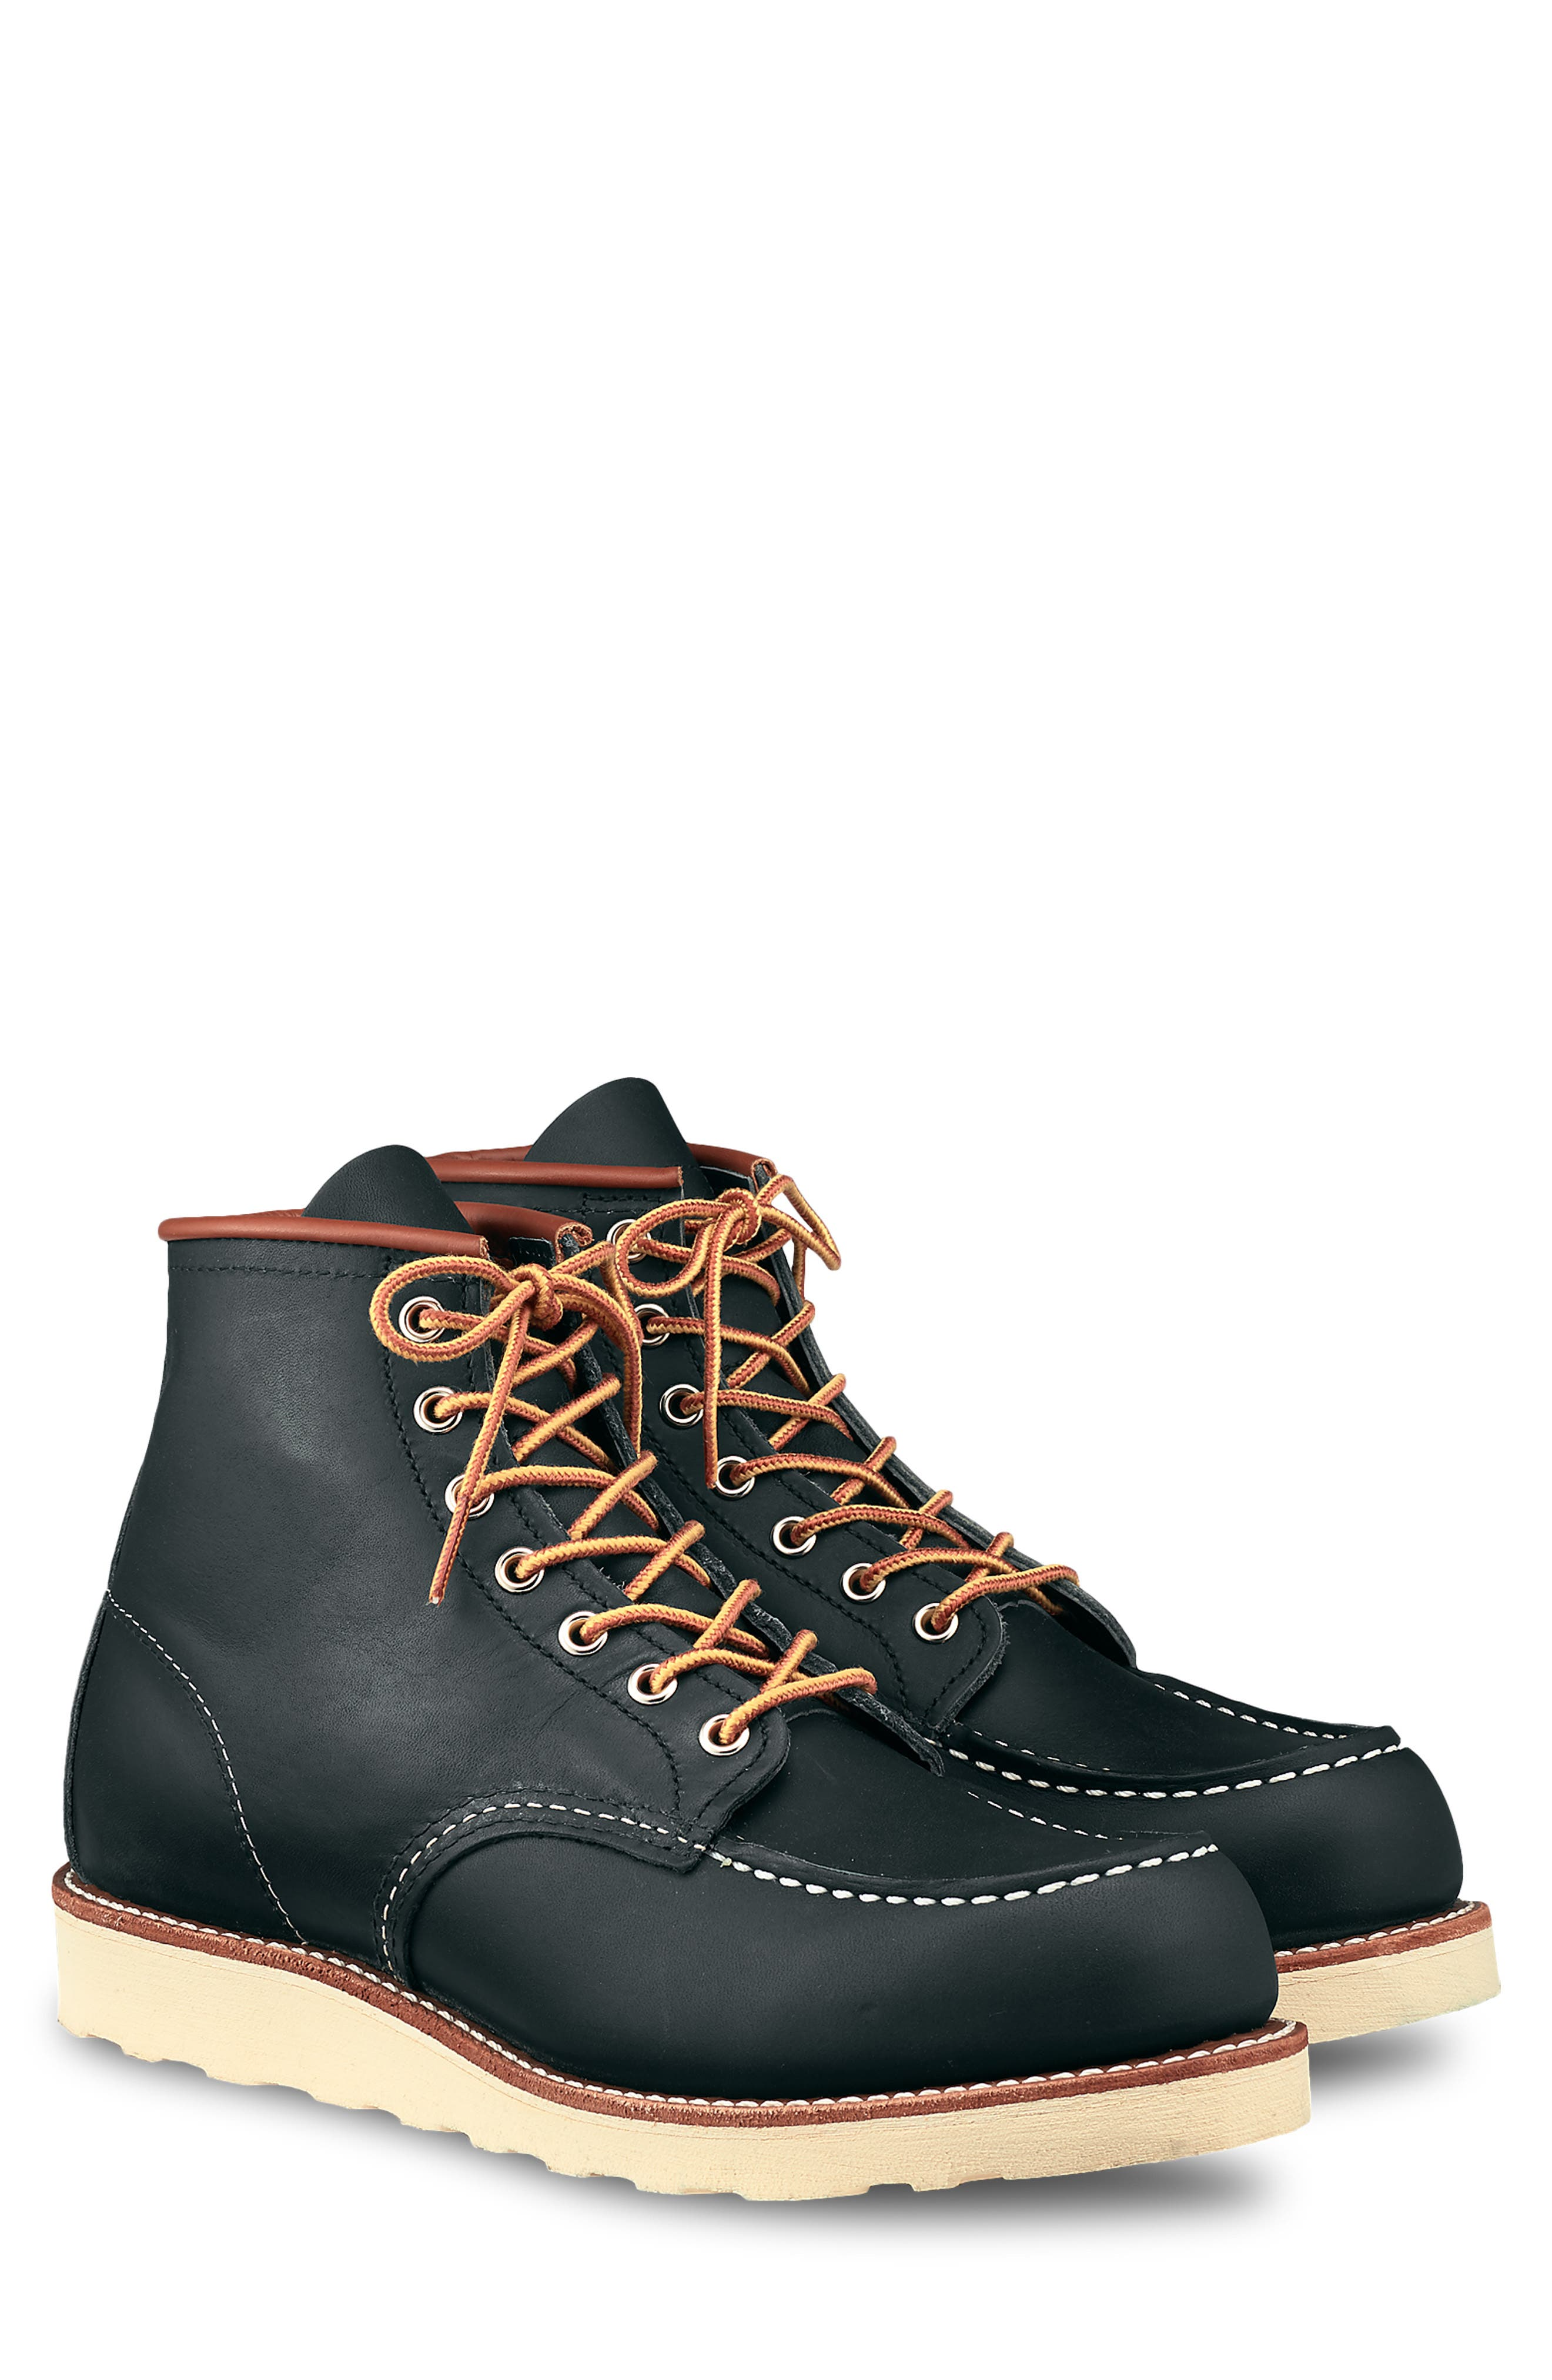 Red Wing 6 Inch Moc Toe Boot, Blue